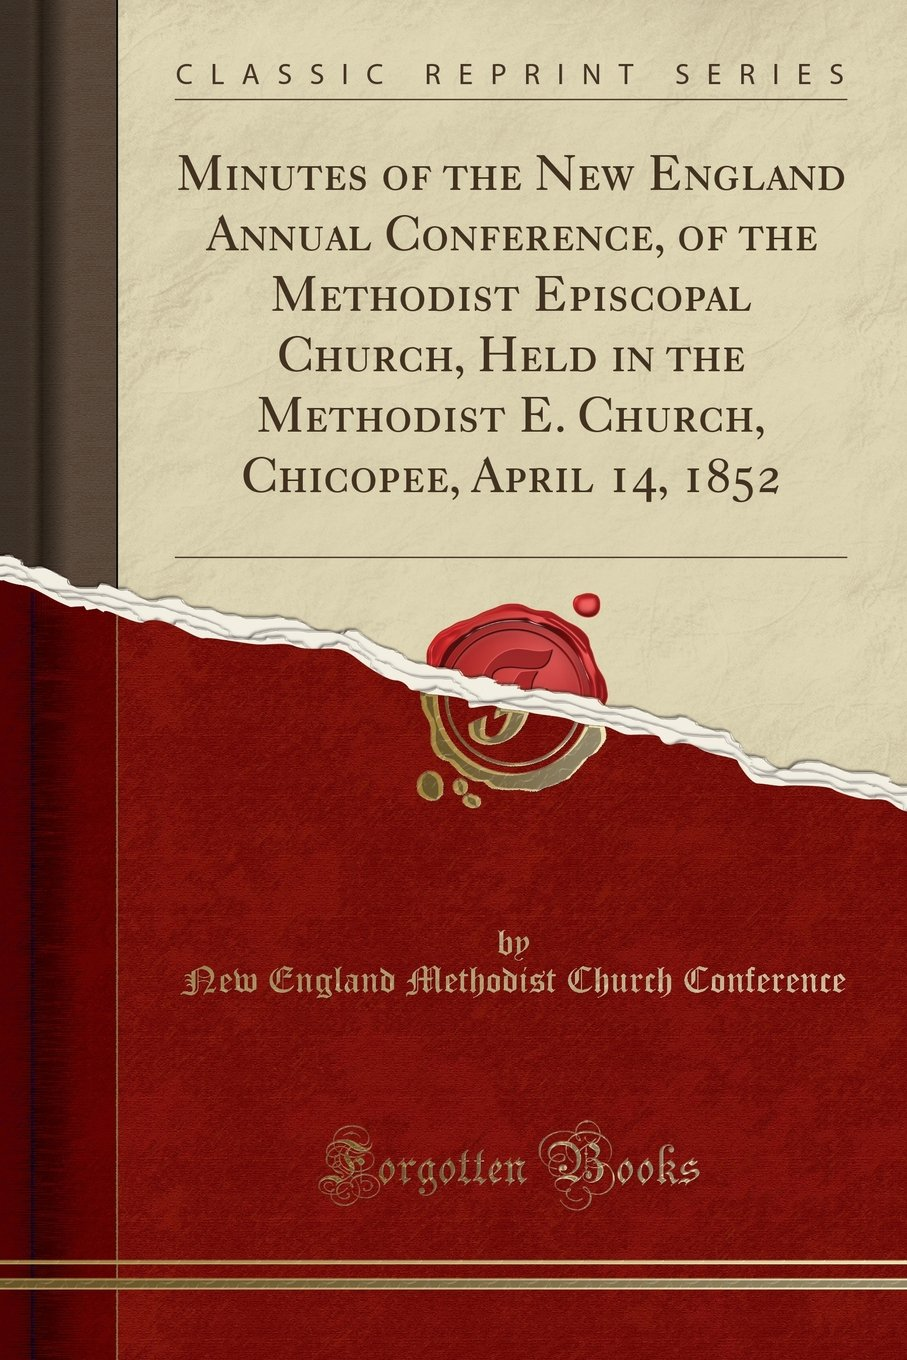 Download Minutes of the New England Annual Conference, of the Methodist Episcopal Church, Held in the Methodist E. Church, Chicopee, April 14, 1852 (Classic Reprint) pdf